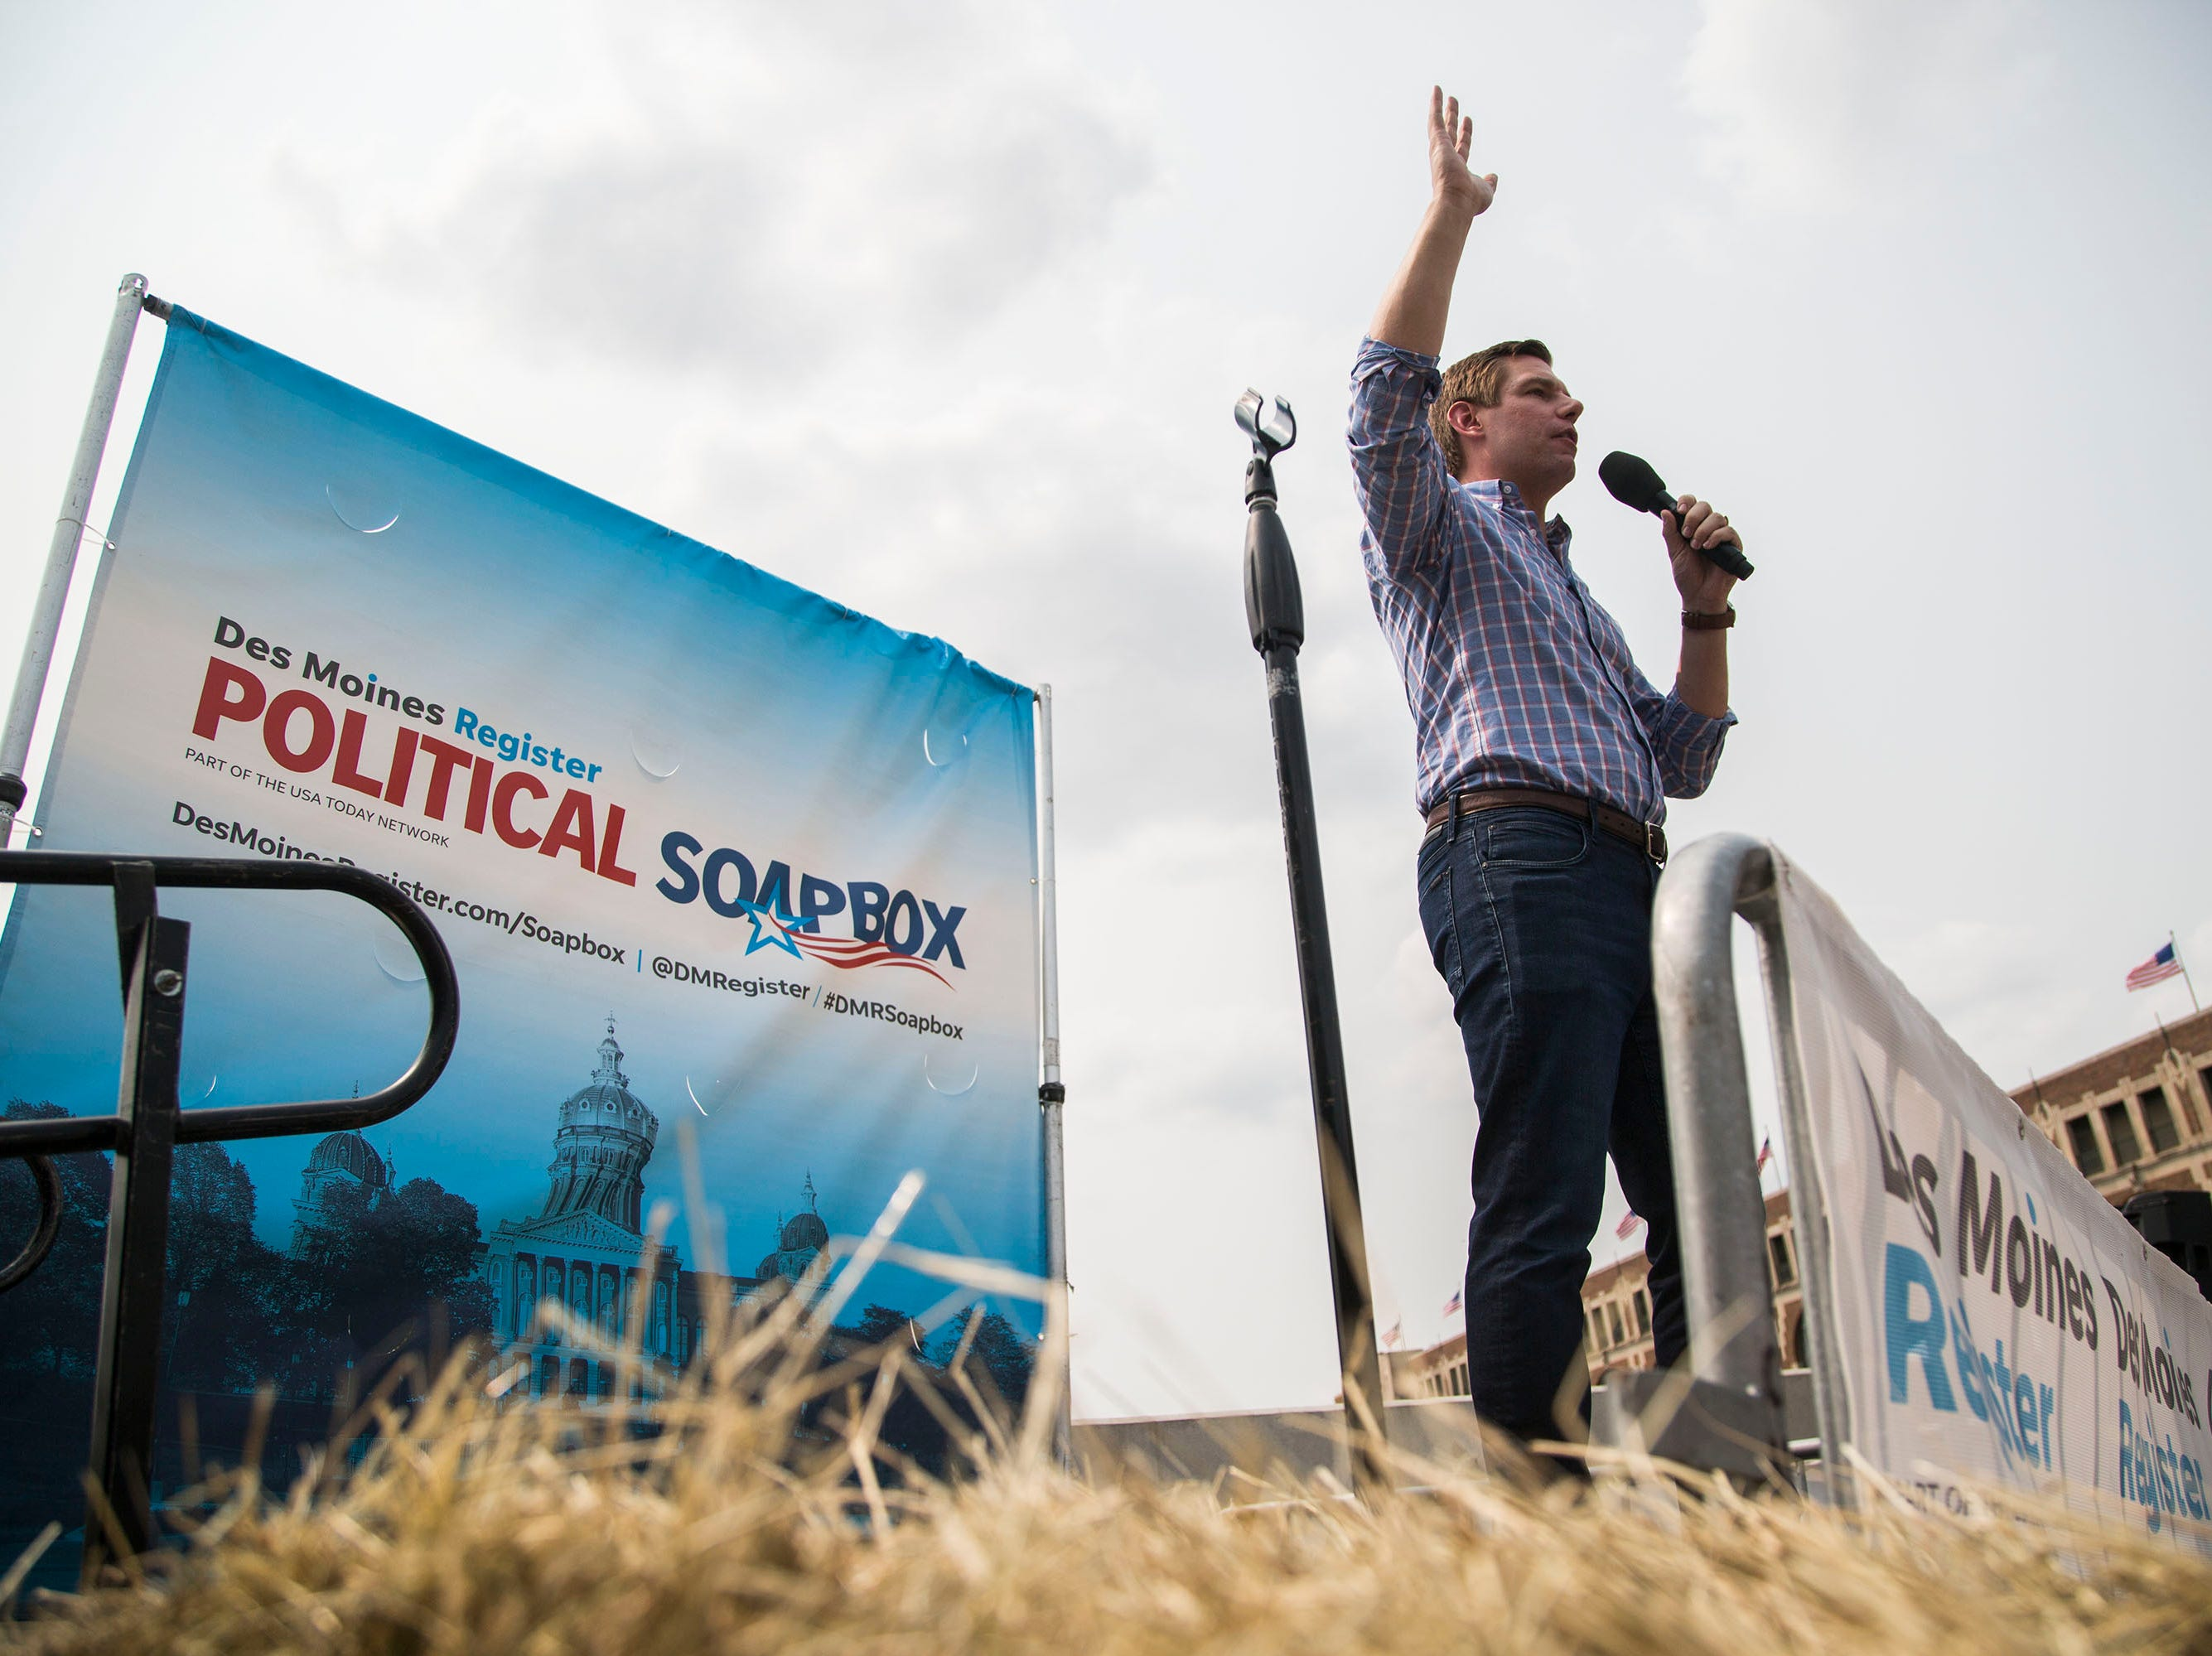 Rep. Eric Swalwell, a Democrat from California, speaks on the Des Moines Register Political Soapbox, on Saturday, Aug. 11, 2018, at the Iowa State Fair.